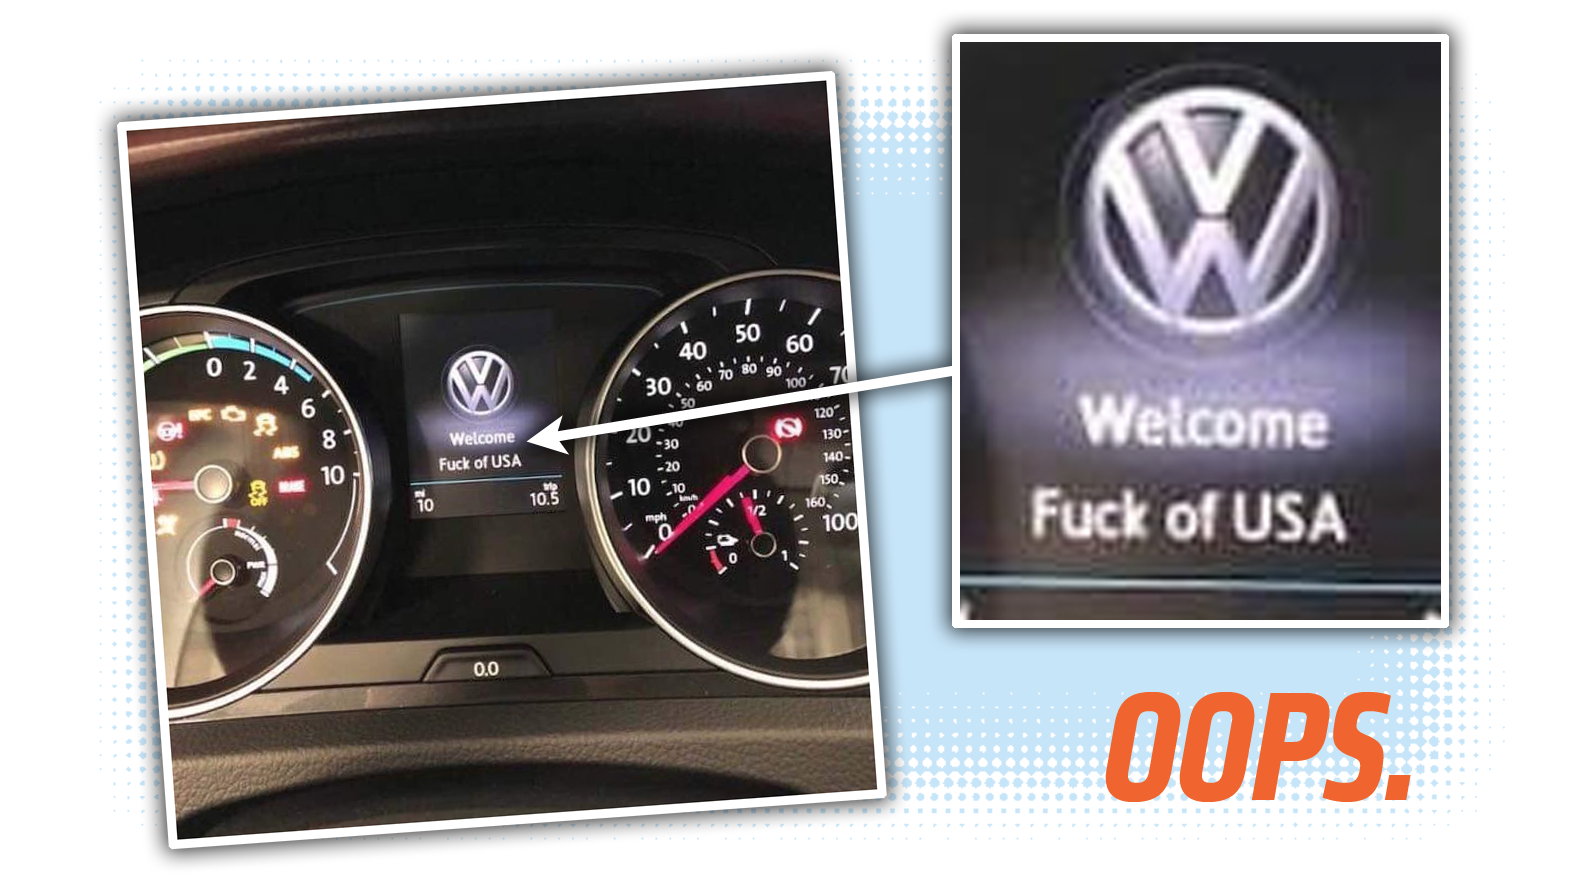 Brand-New Volkswagen Arrives At Dealer And Drops An F-Bomb To America